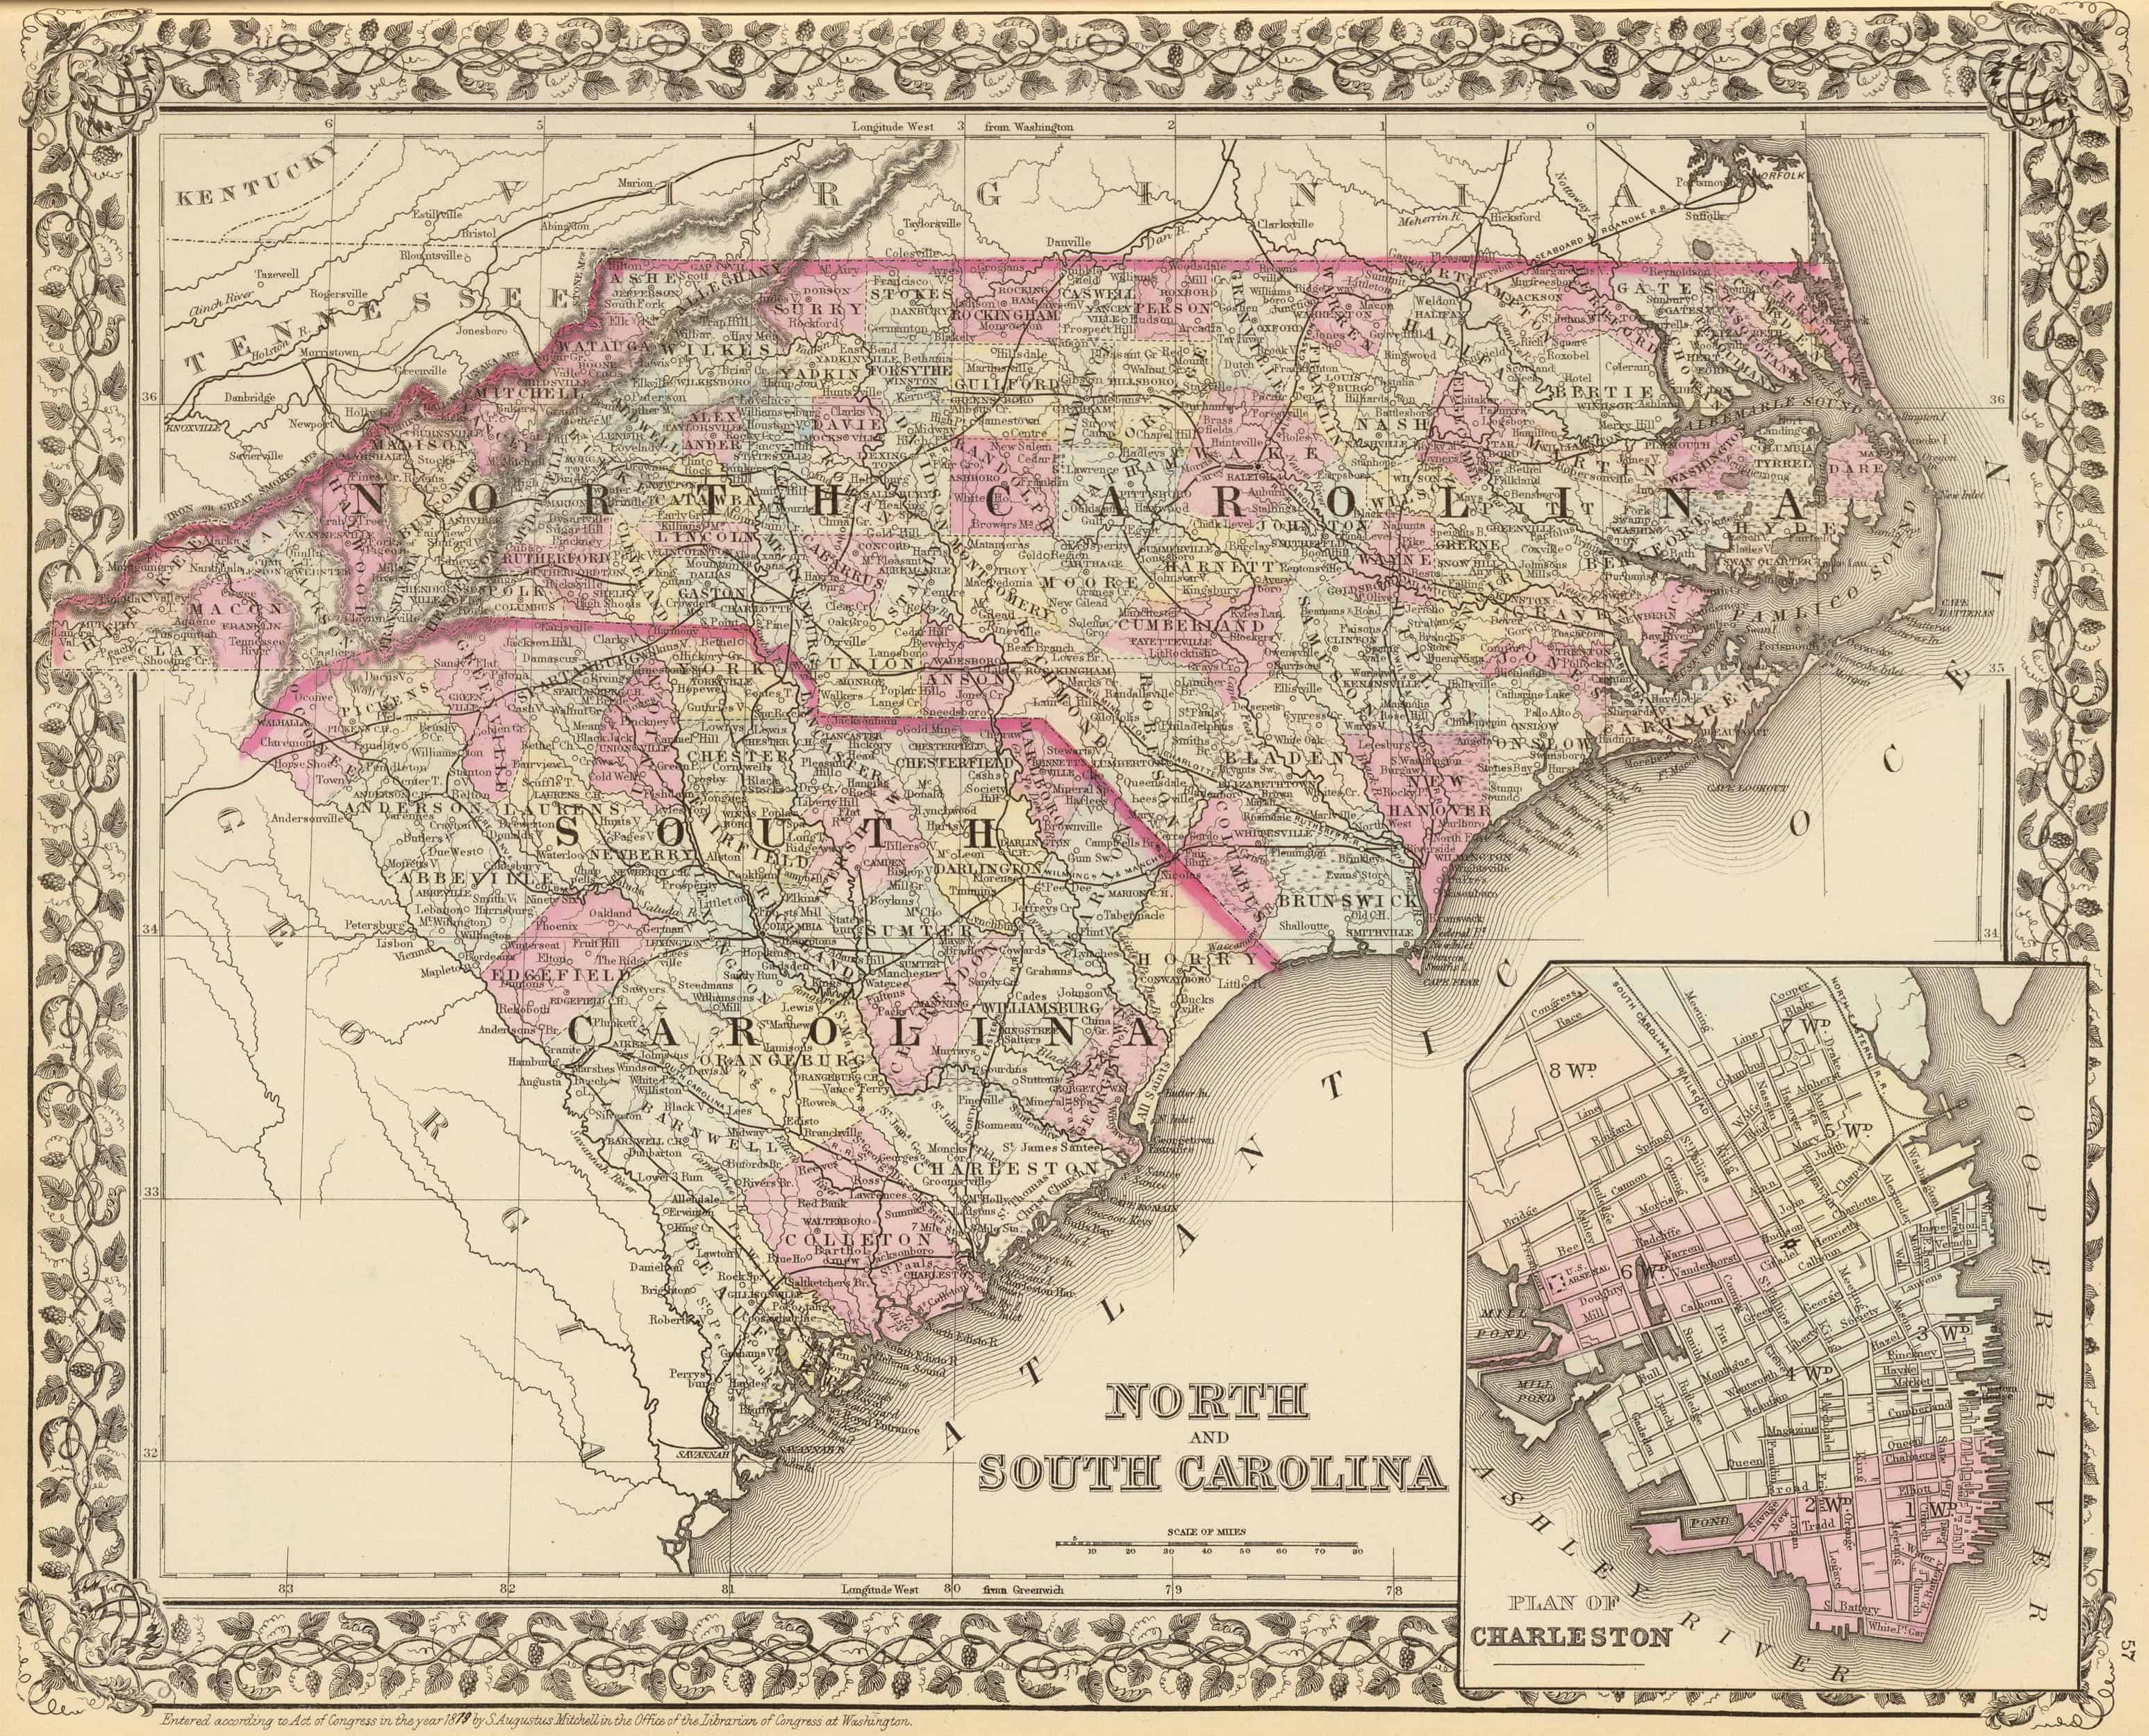 Old Historical City, County and State Maps of South Carolina